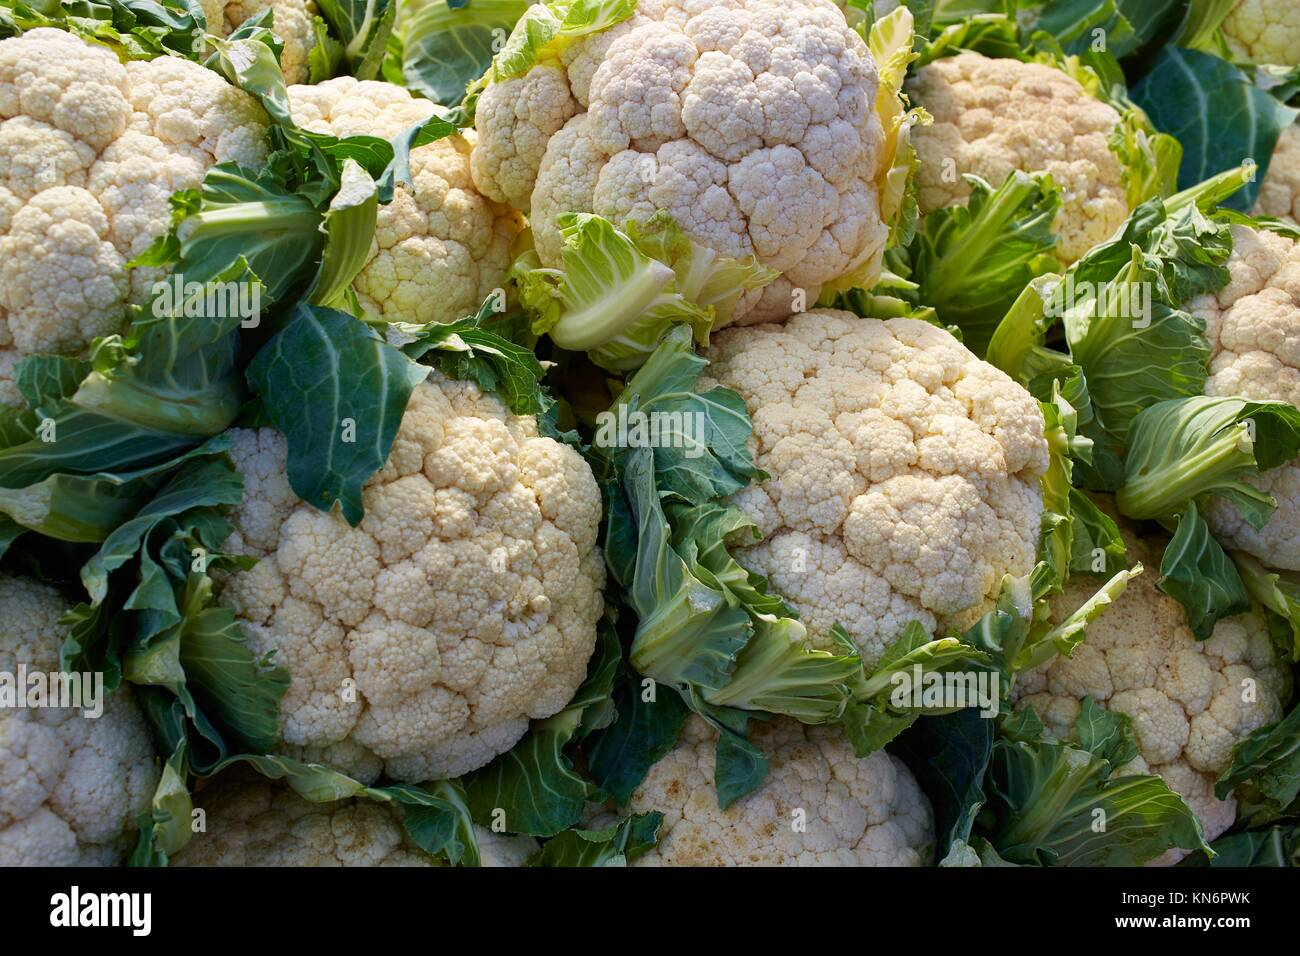 cauliflower cabbage texture pattern stacked in a row at market outdoor. - Stock Image